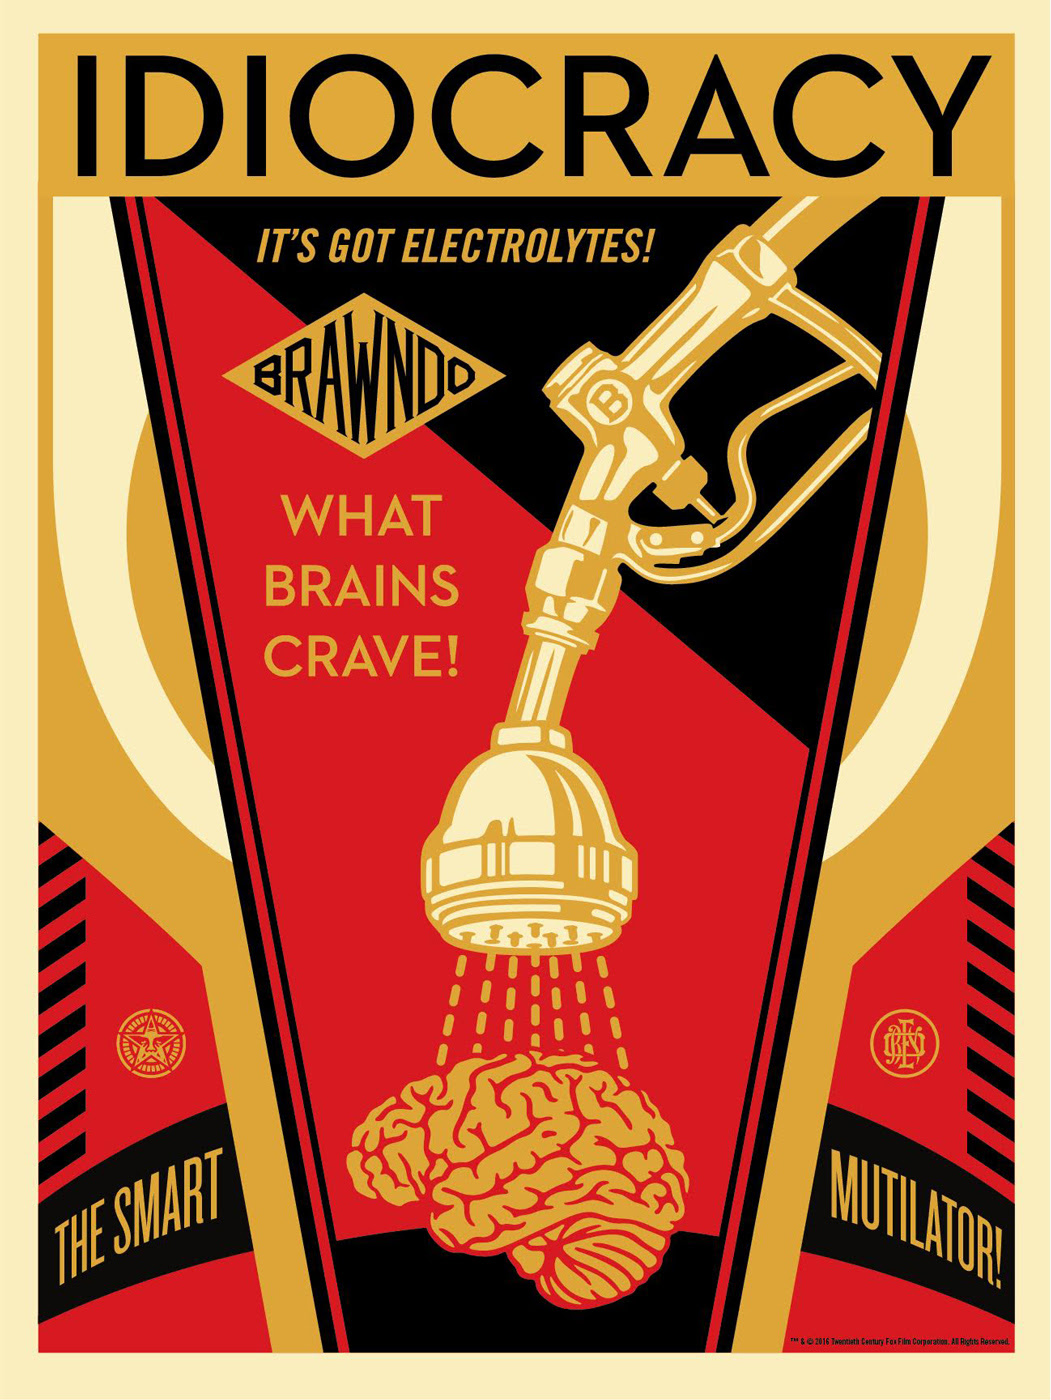 a film analysis of idiocracy by mike judge The researcher of the essay the movie idiocracy aims to analyze mike judge's film idiocracy which explores the idea that society is becoming dumber.